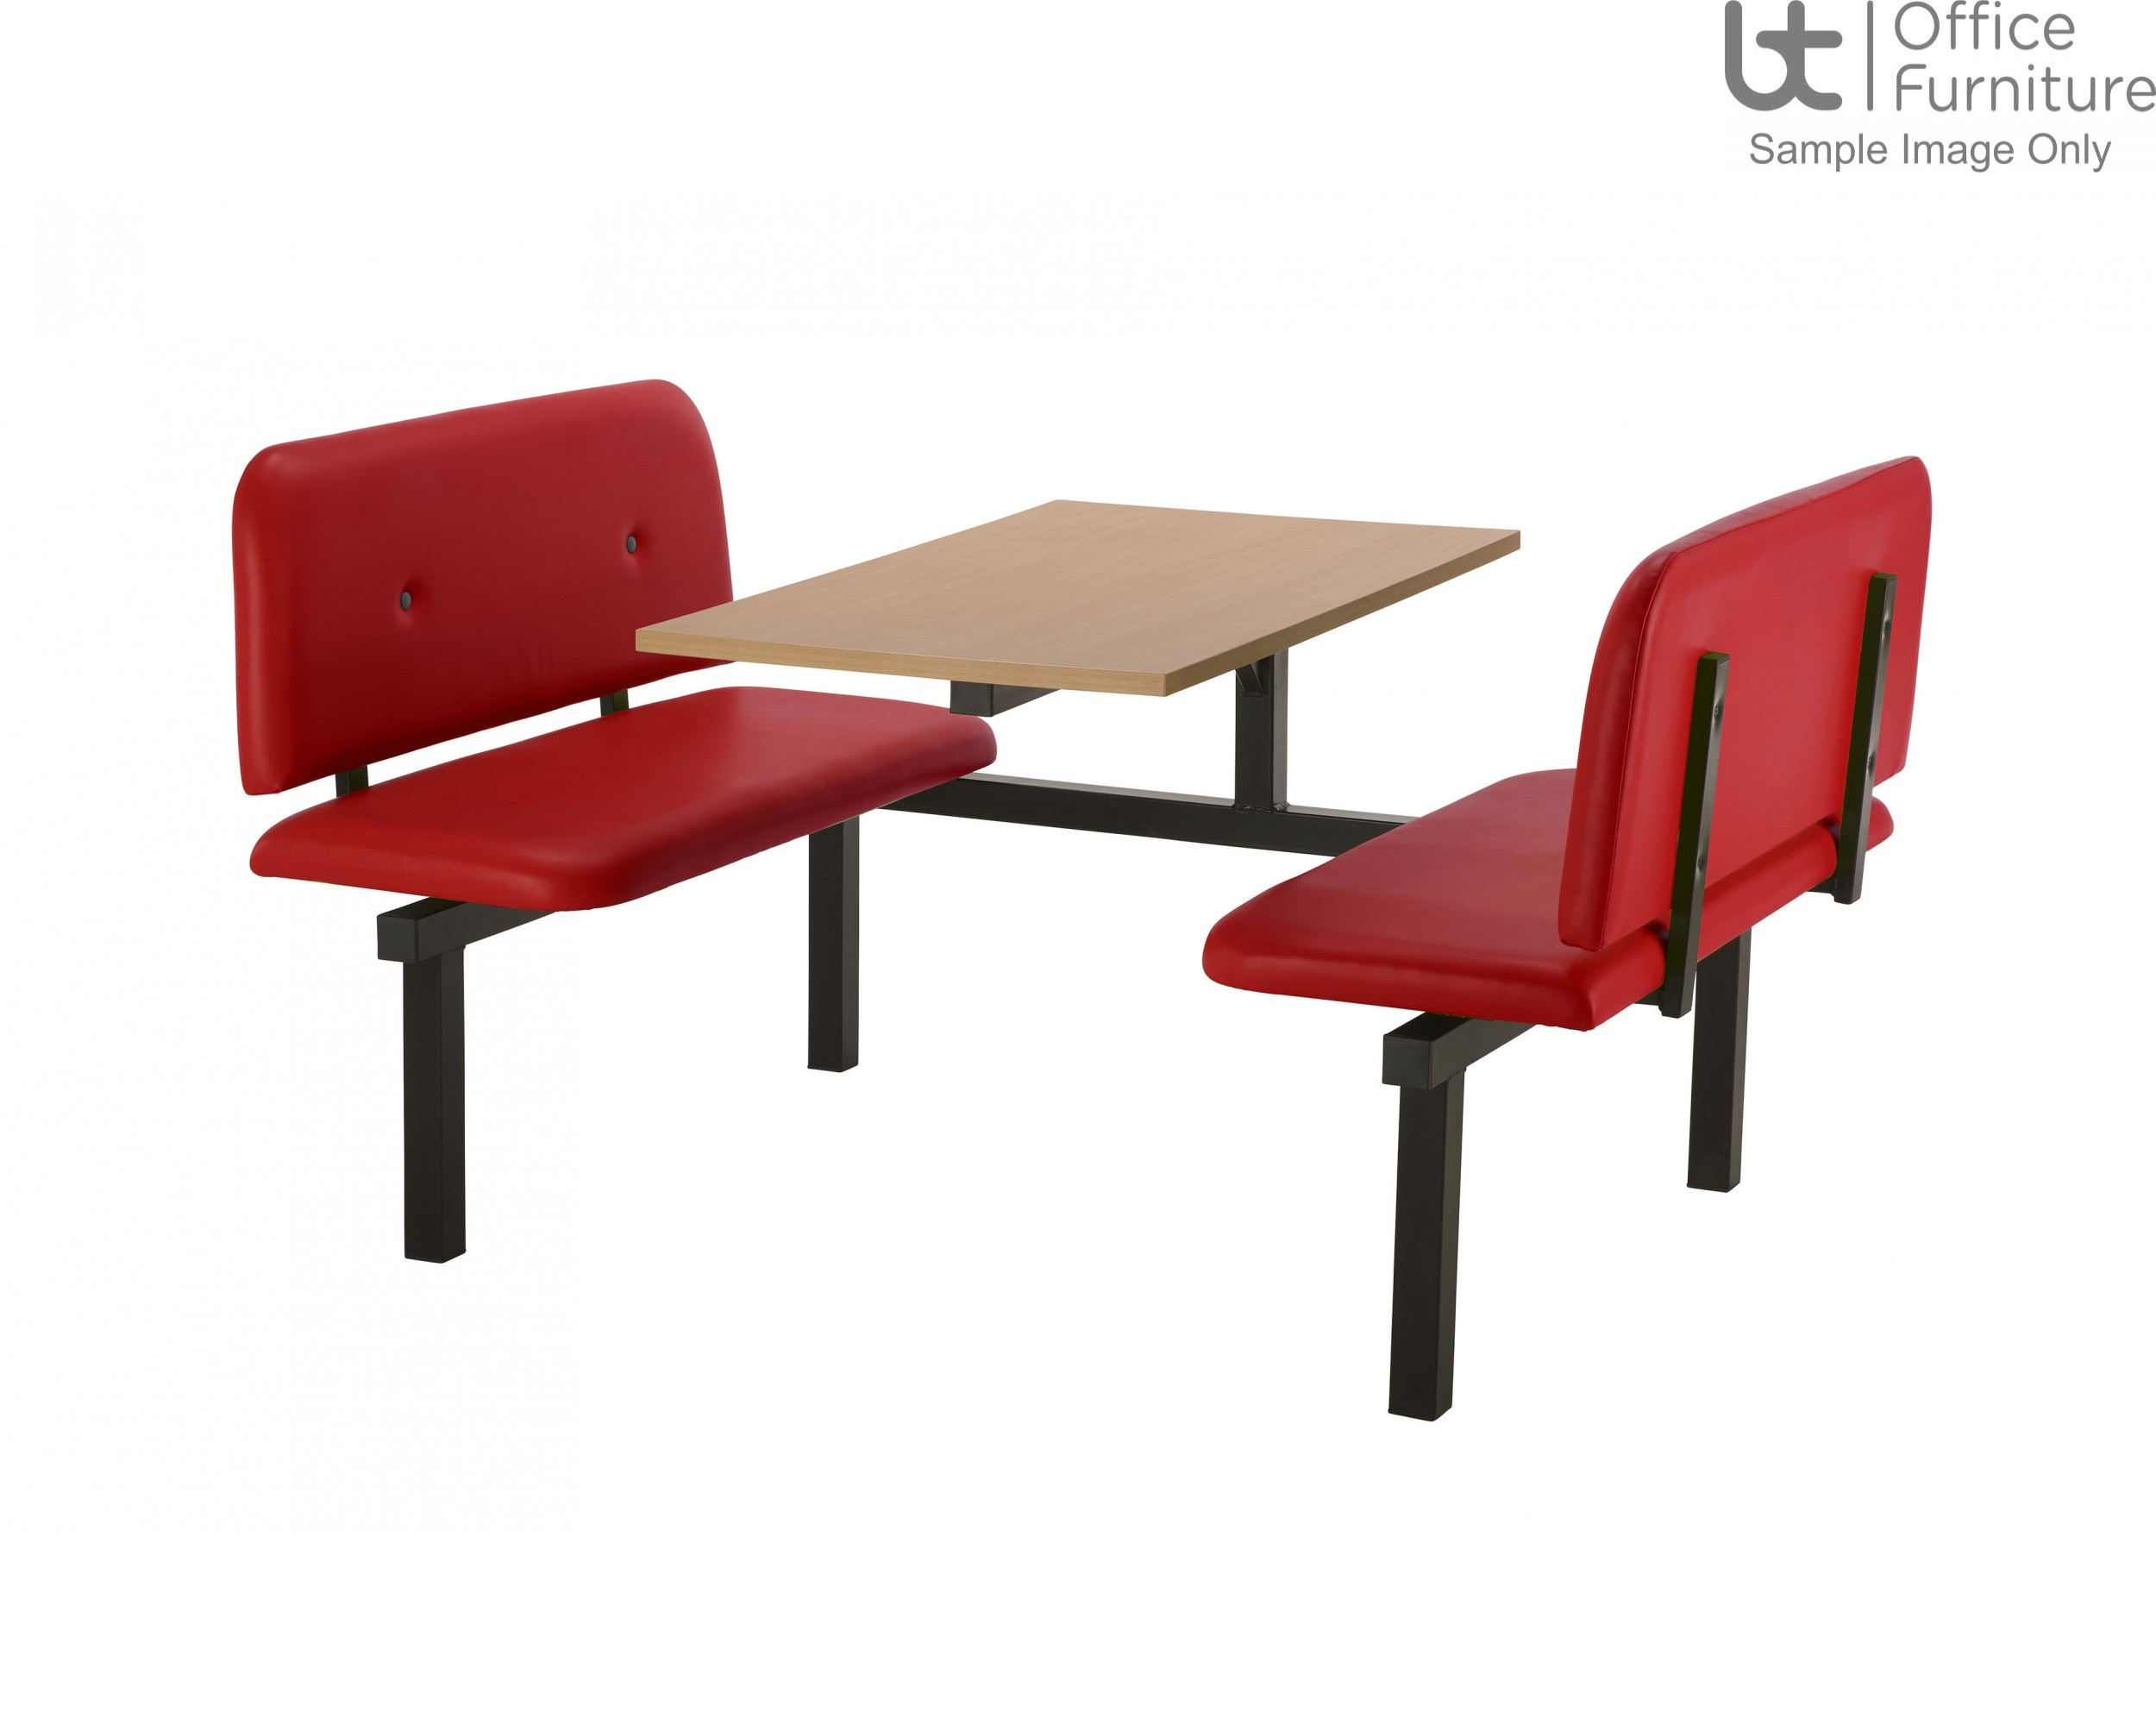 Bench 4 Seat Modular Canteen Fast food Unit - Red Vinyl Seats